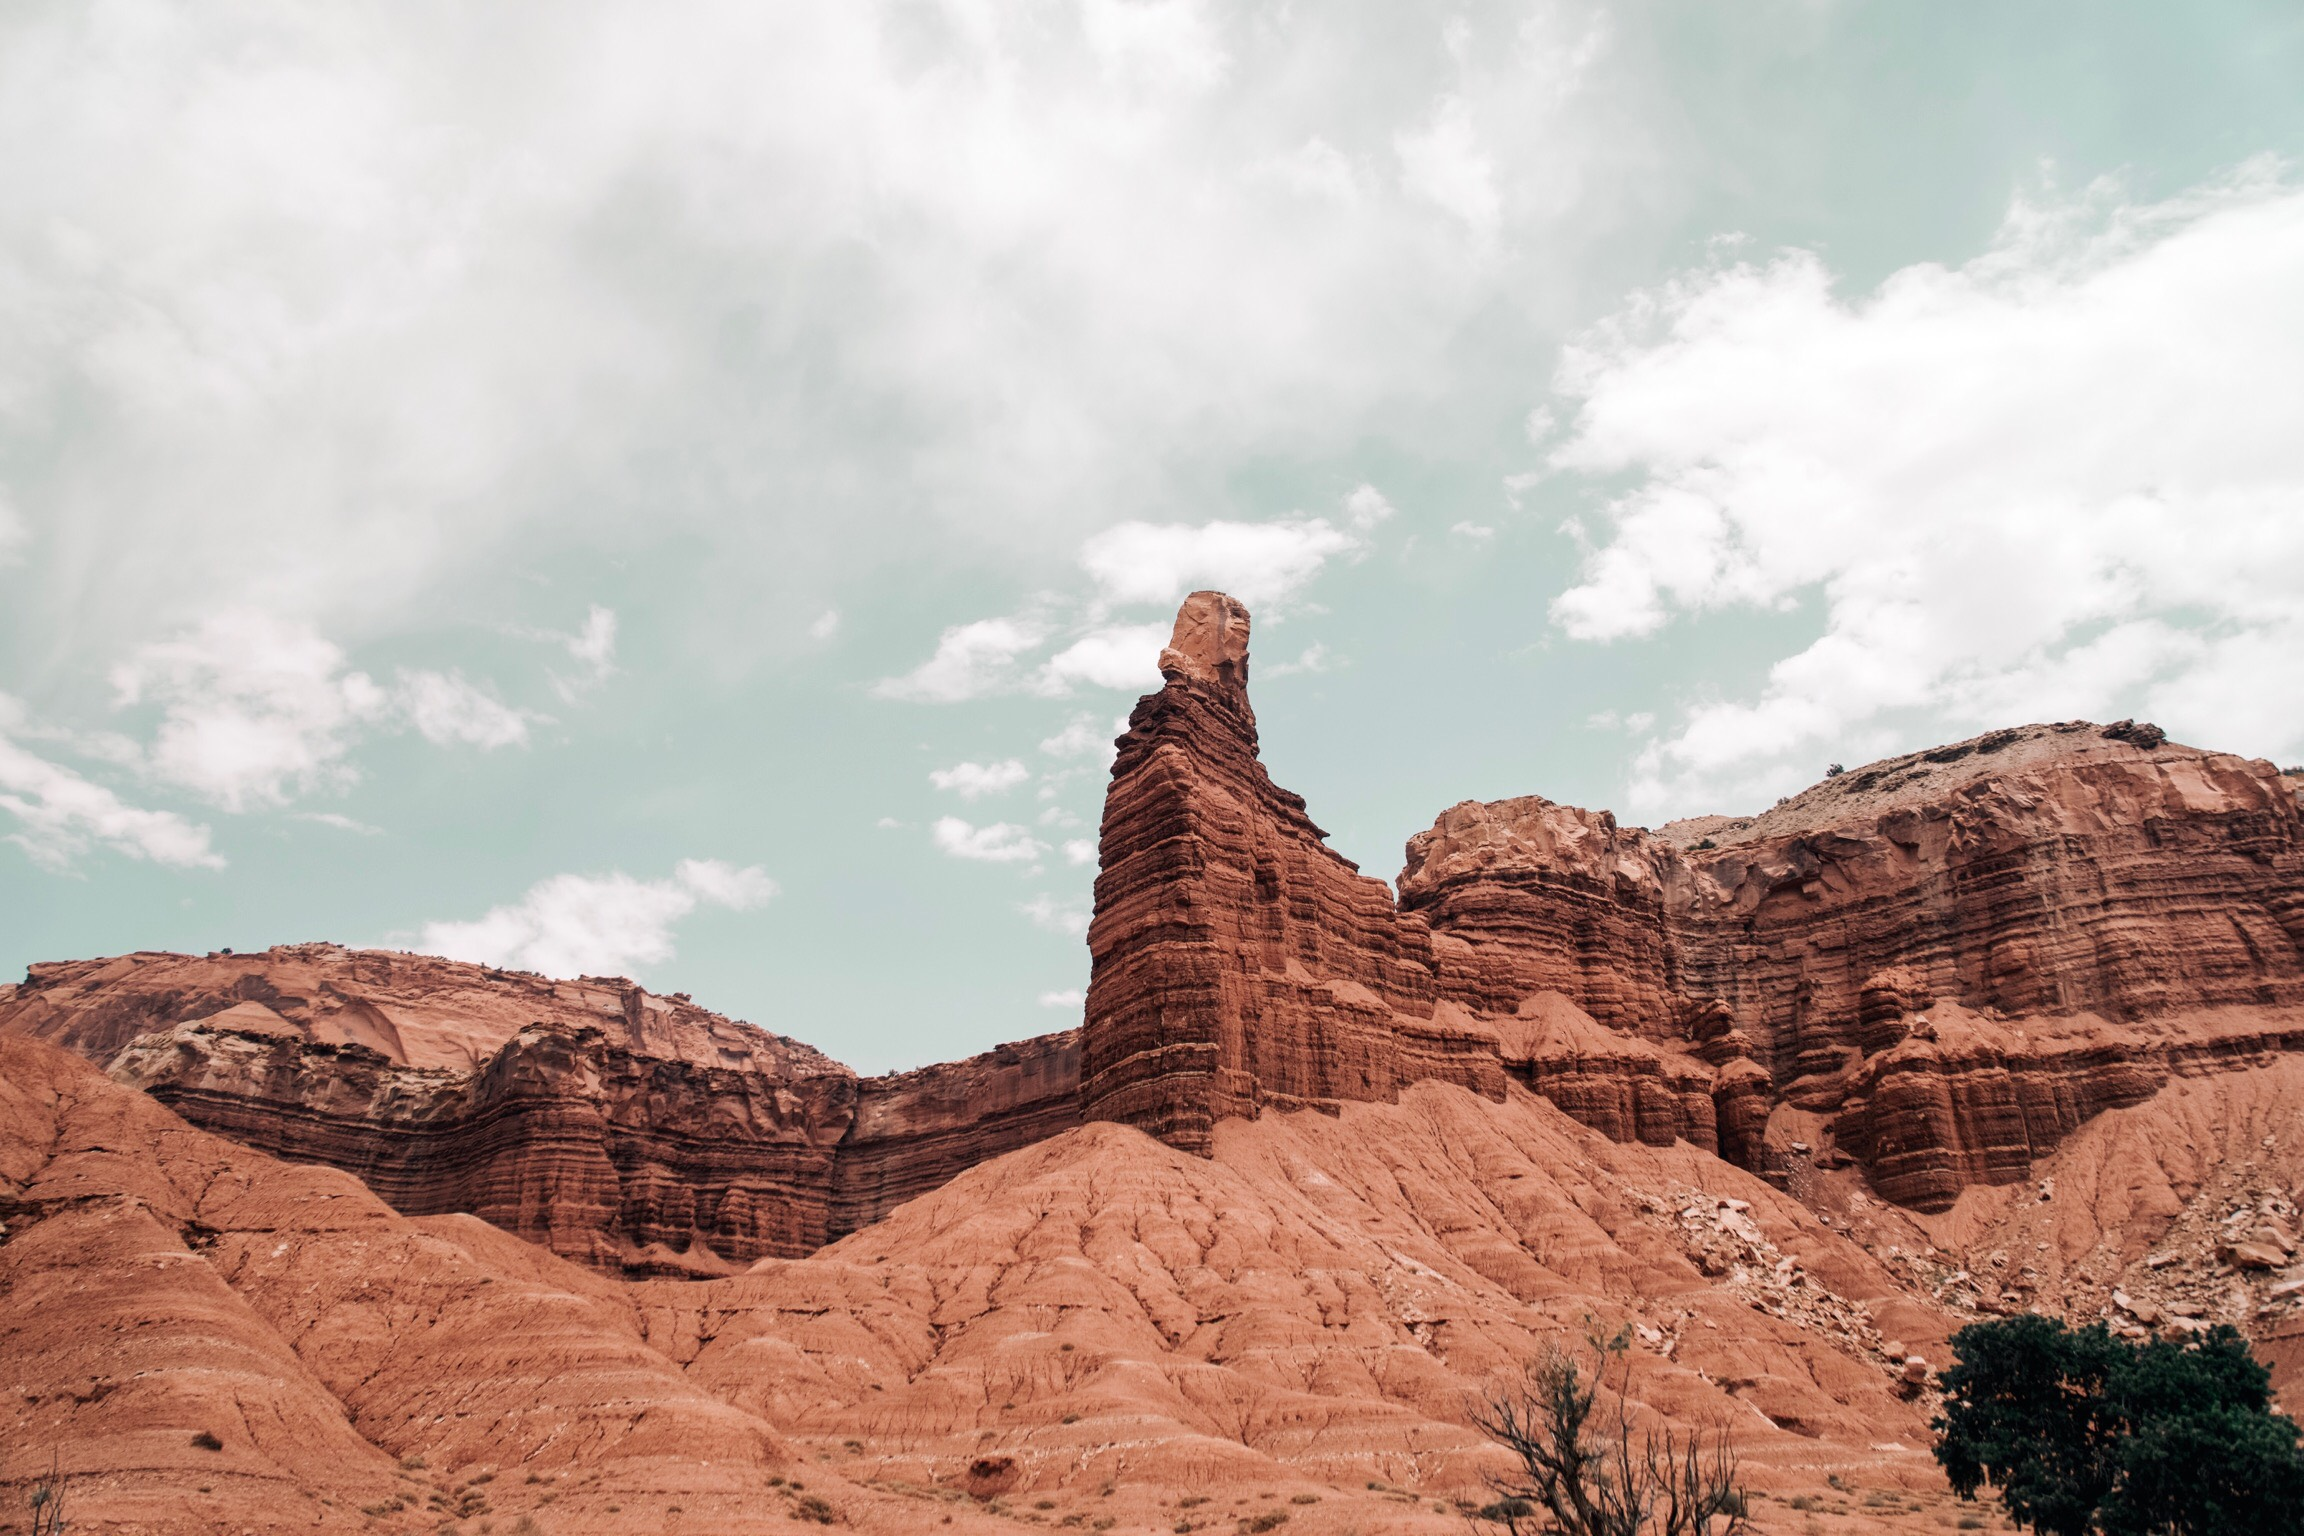 Not the kind of views you get from a hotel bed or resort- Capitol Reef National Park| Edward Arthur Dalton